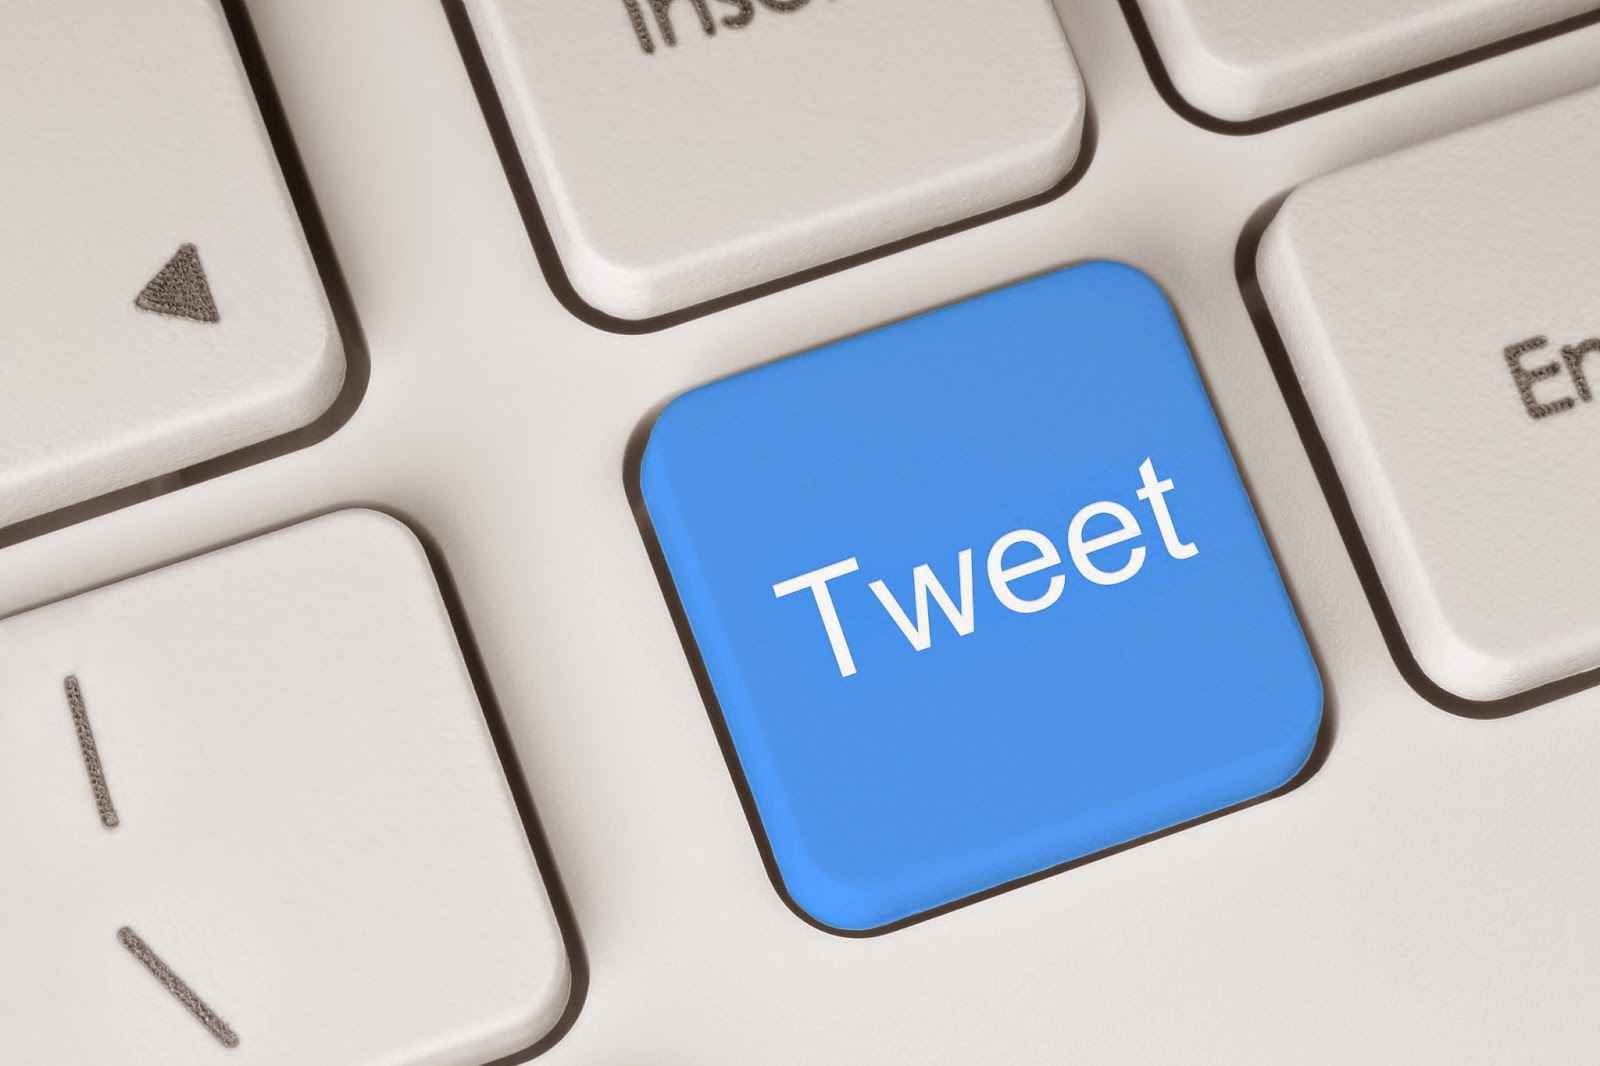 Tweet button on computer keyboard